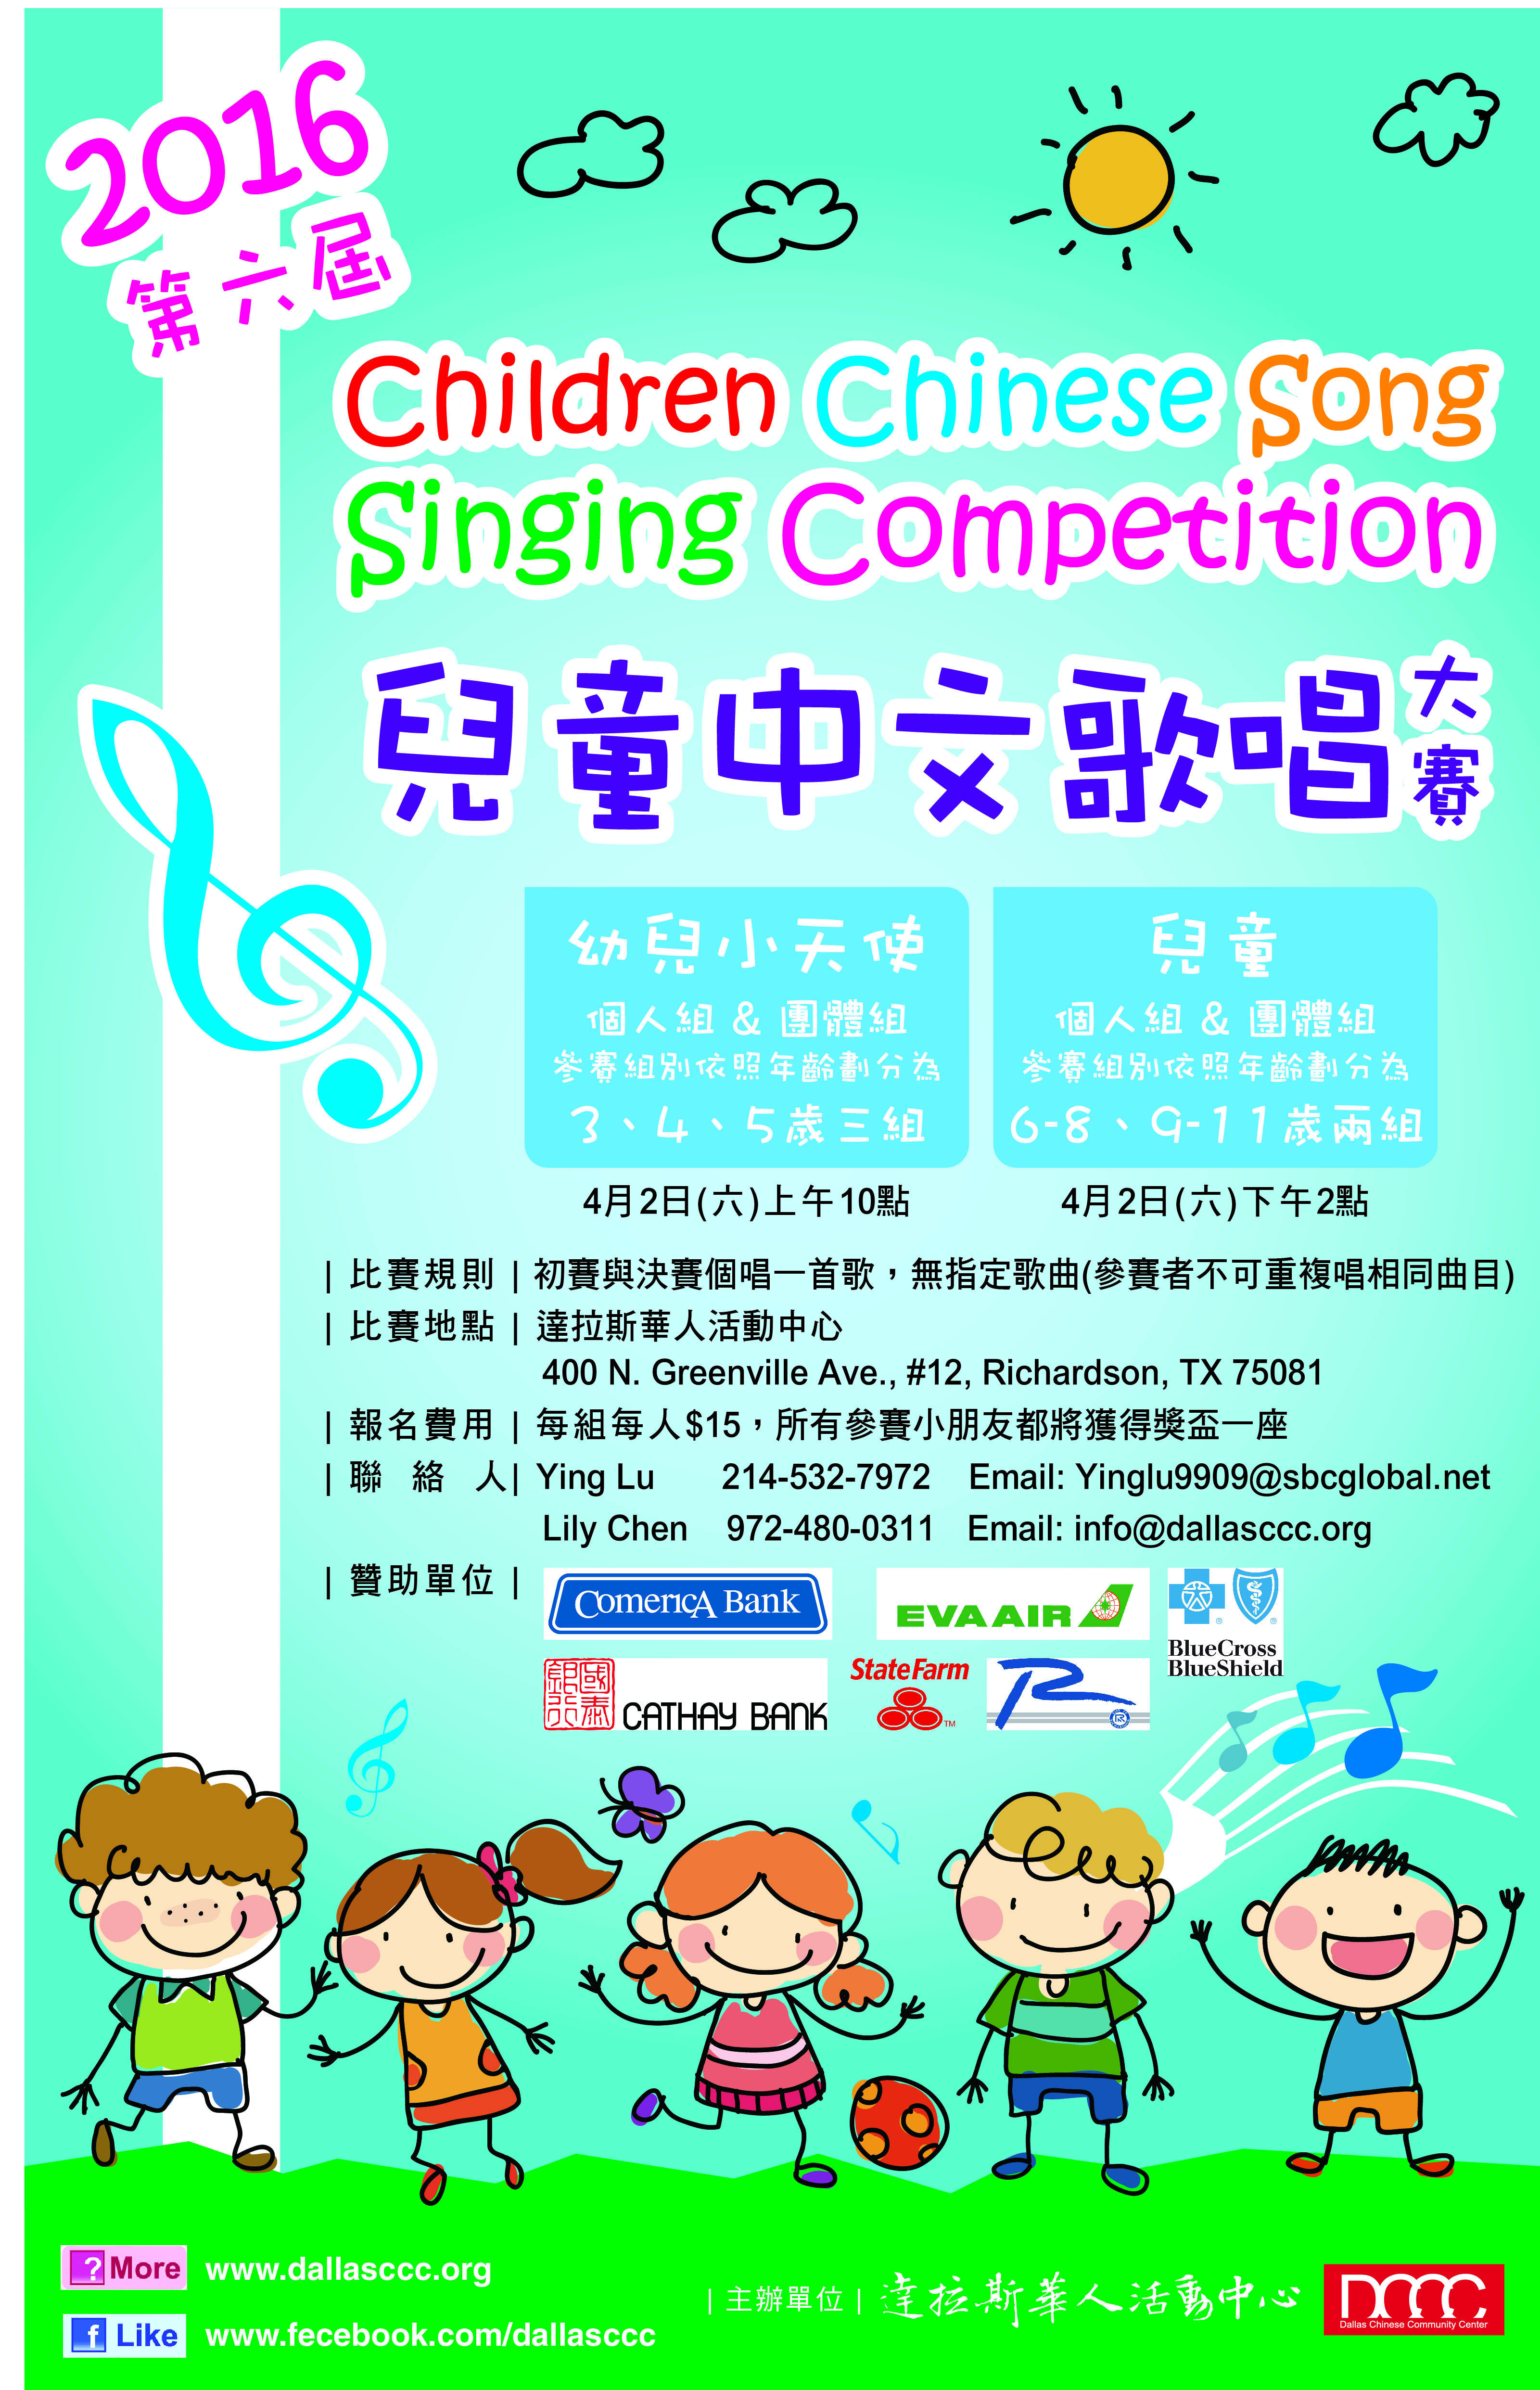 2016 Children Chinese Song Singing Competition – April 2 | DCCC